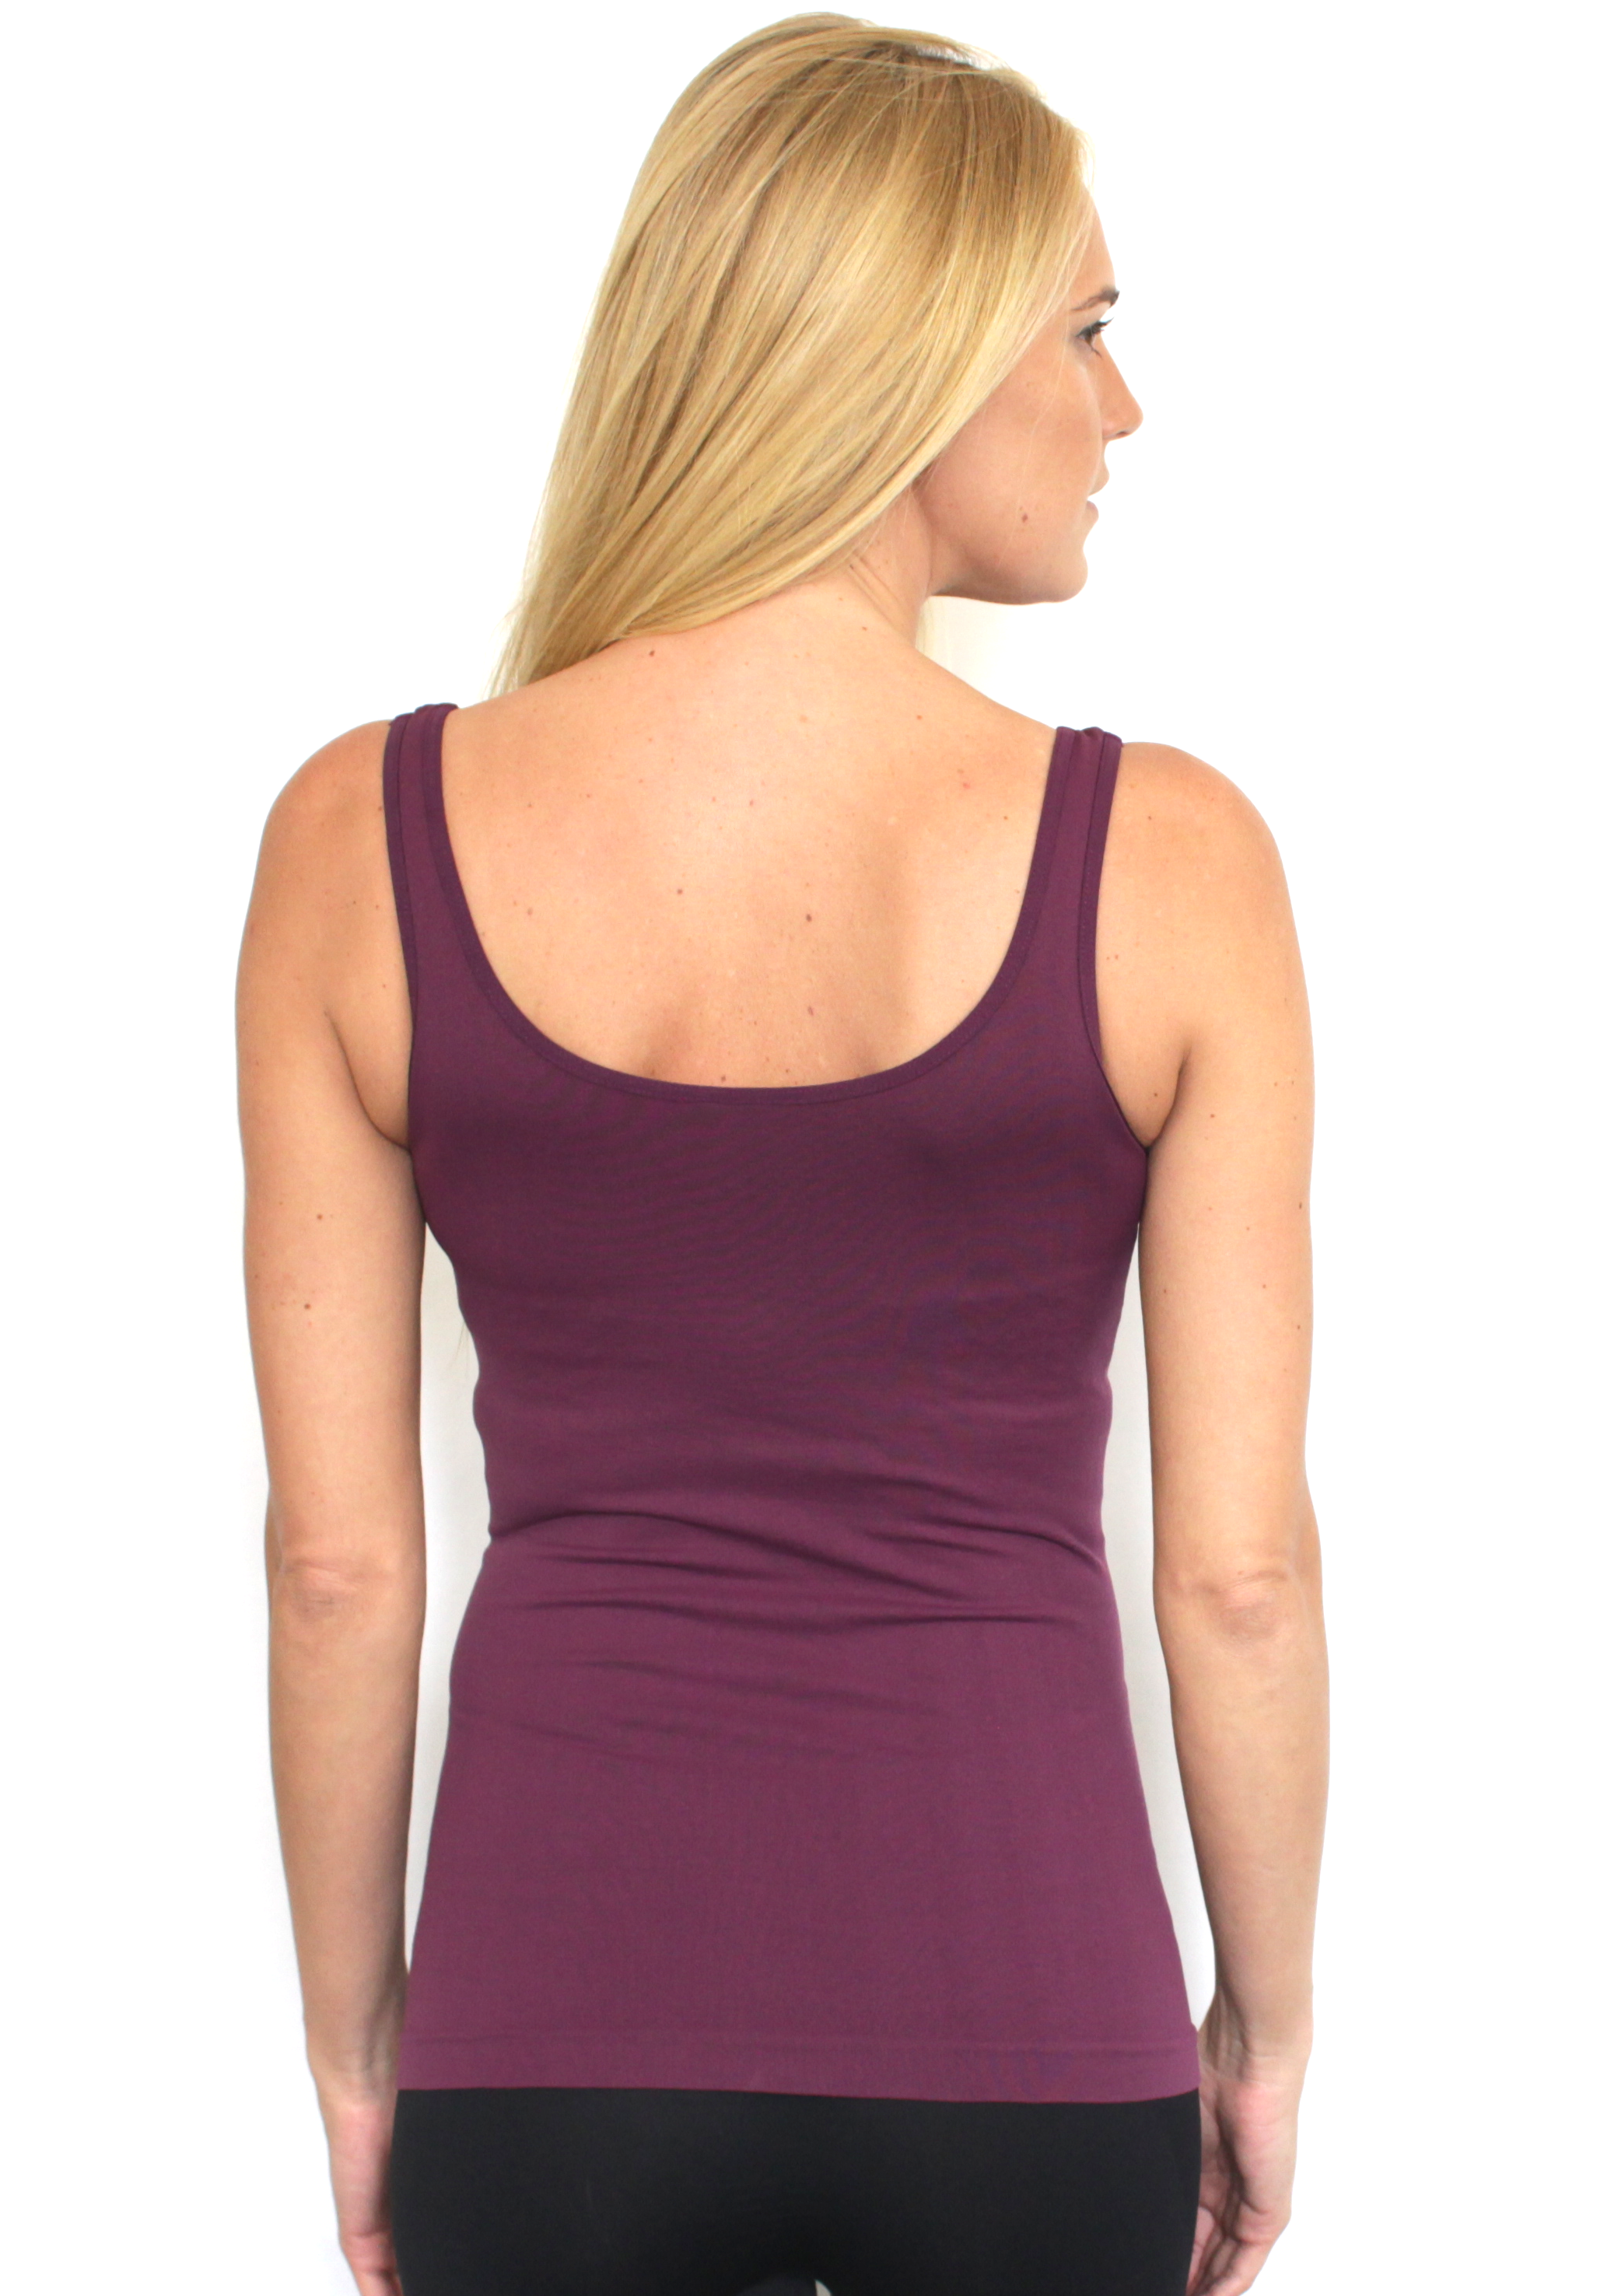 New-Anthropologie-By-Eloise-Seamless-Reversible-Soft-Layering-Tank-Top-Cami-24 thumbnail 9